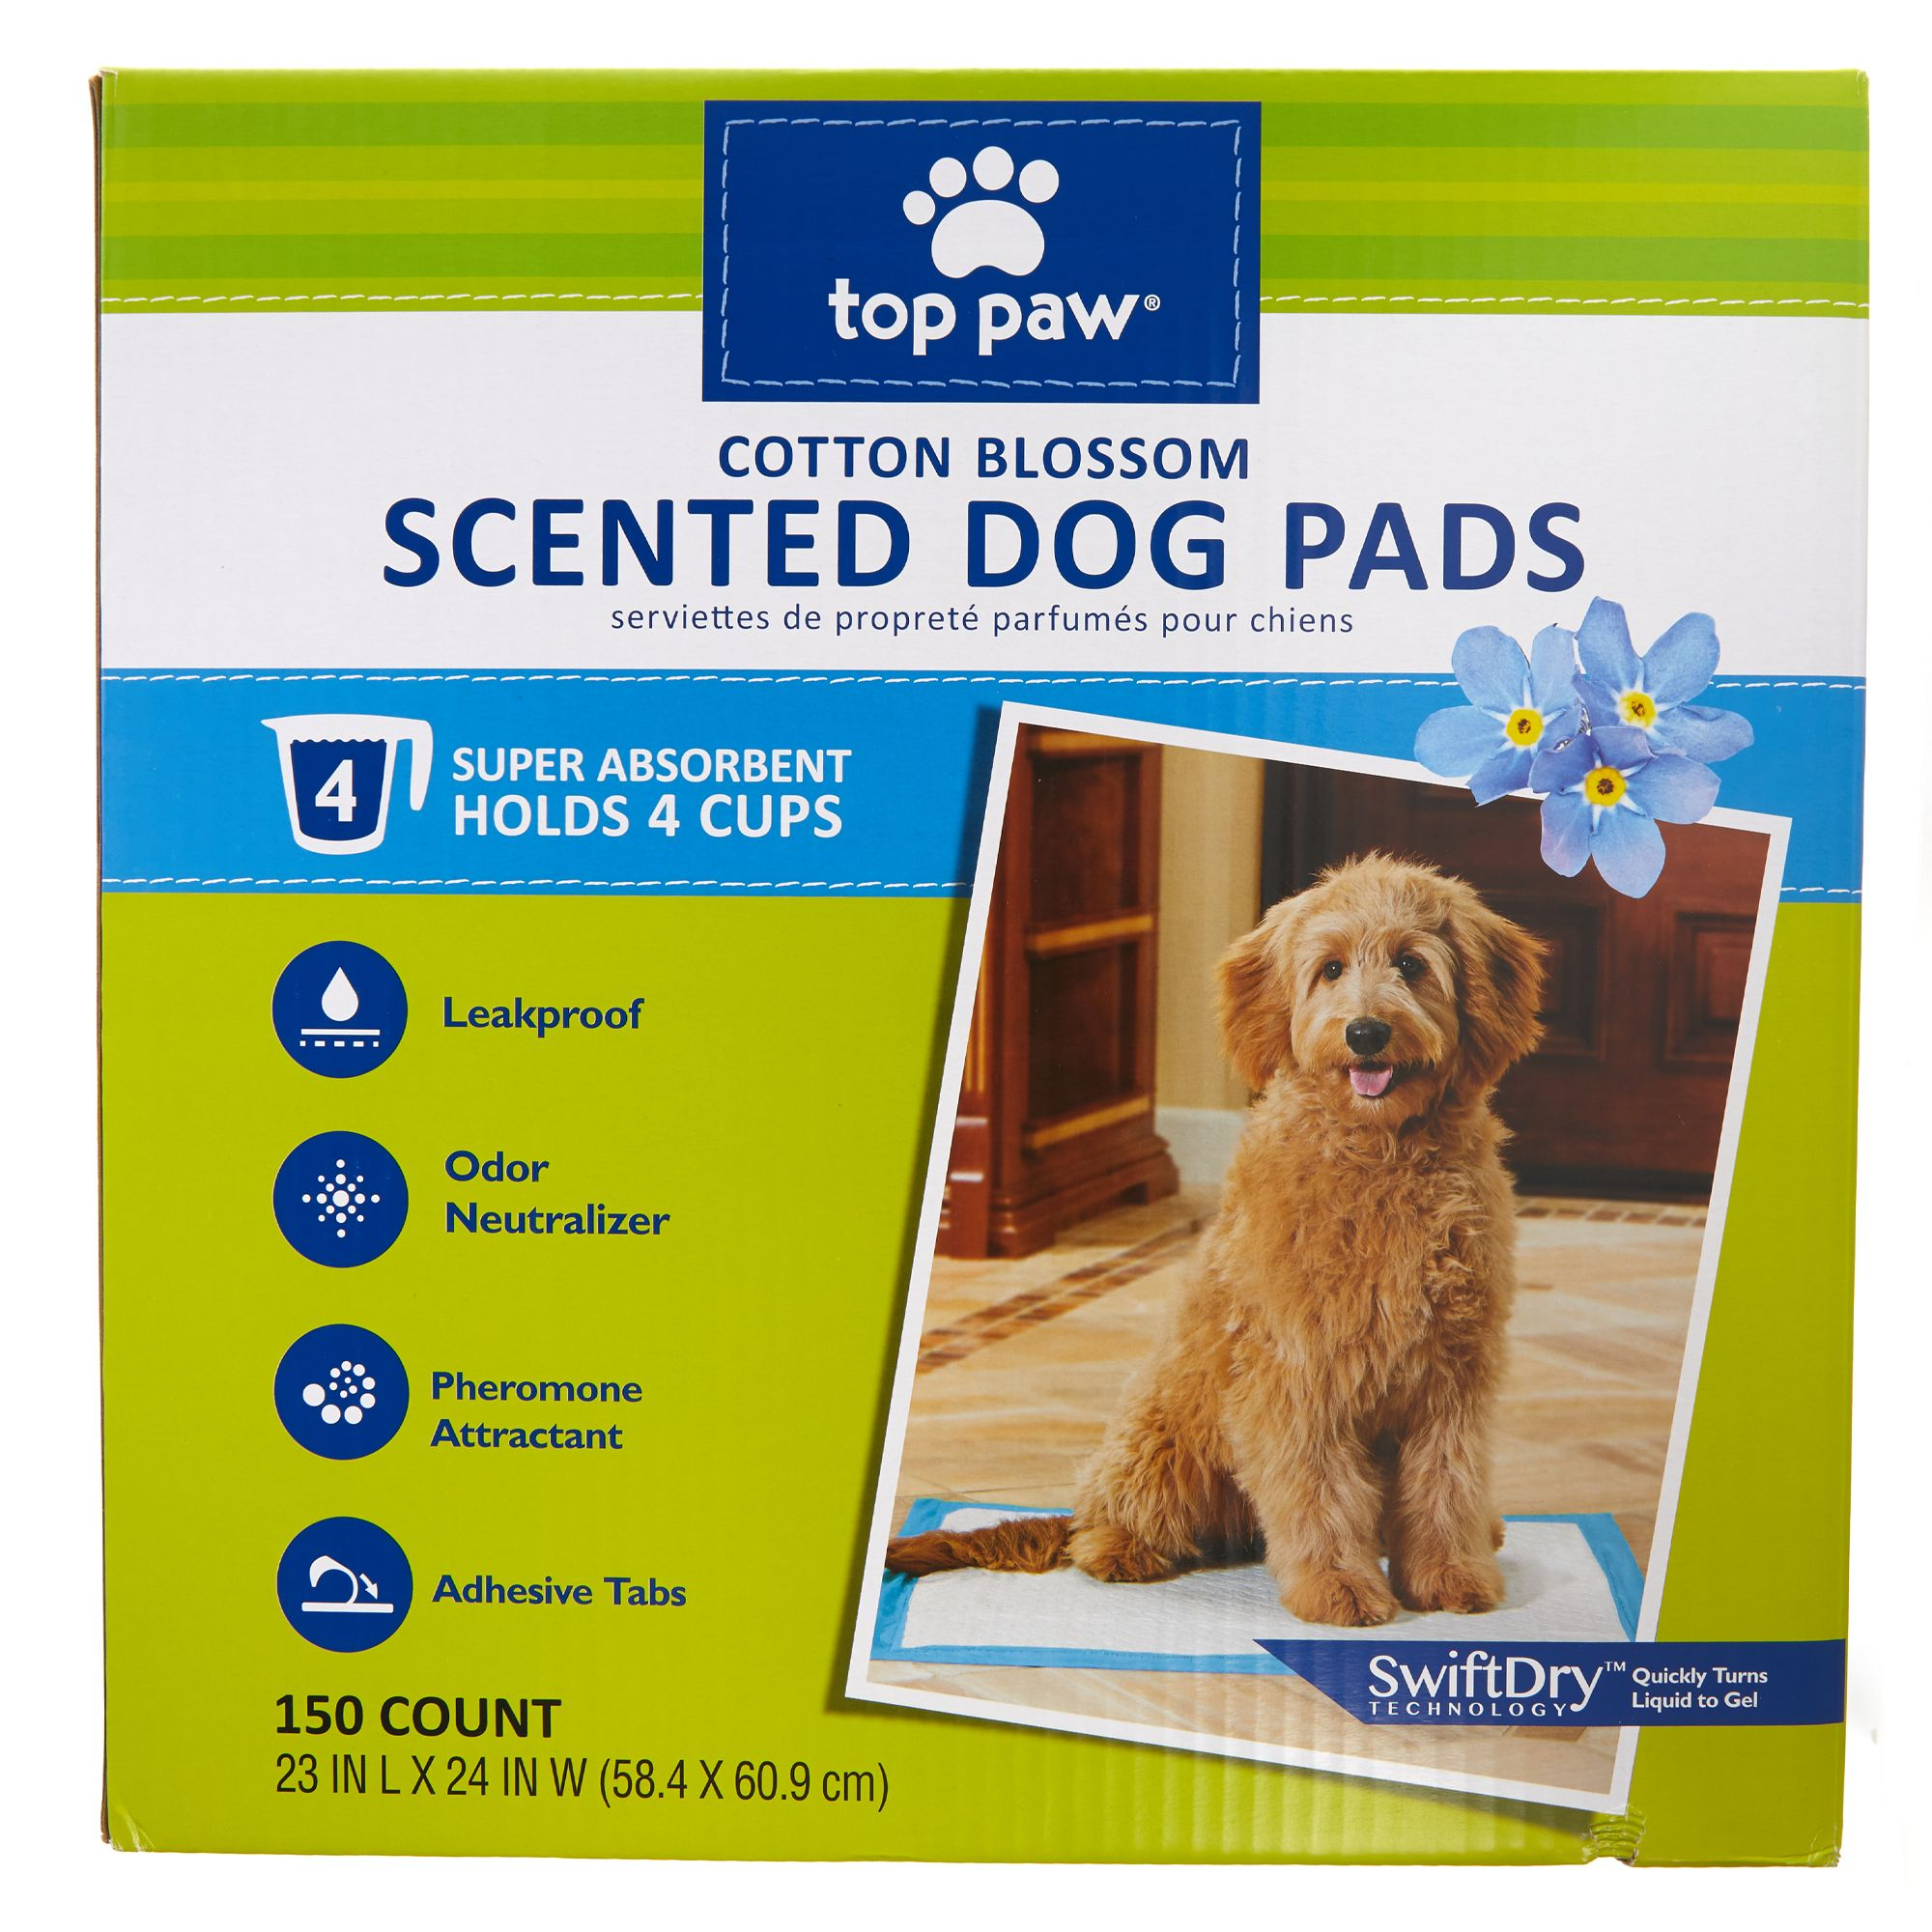 Top Paw Scented Dog Pads size: 150 Count 5270604